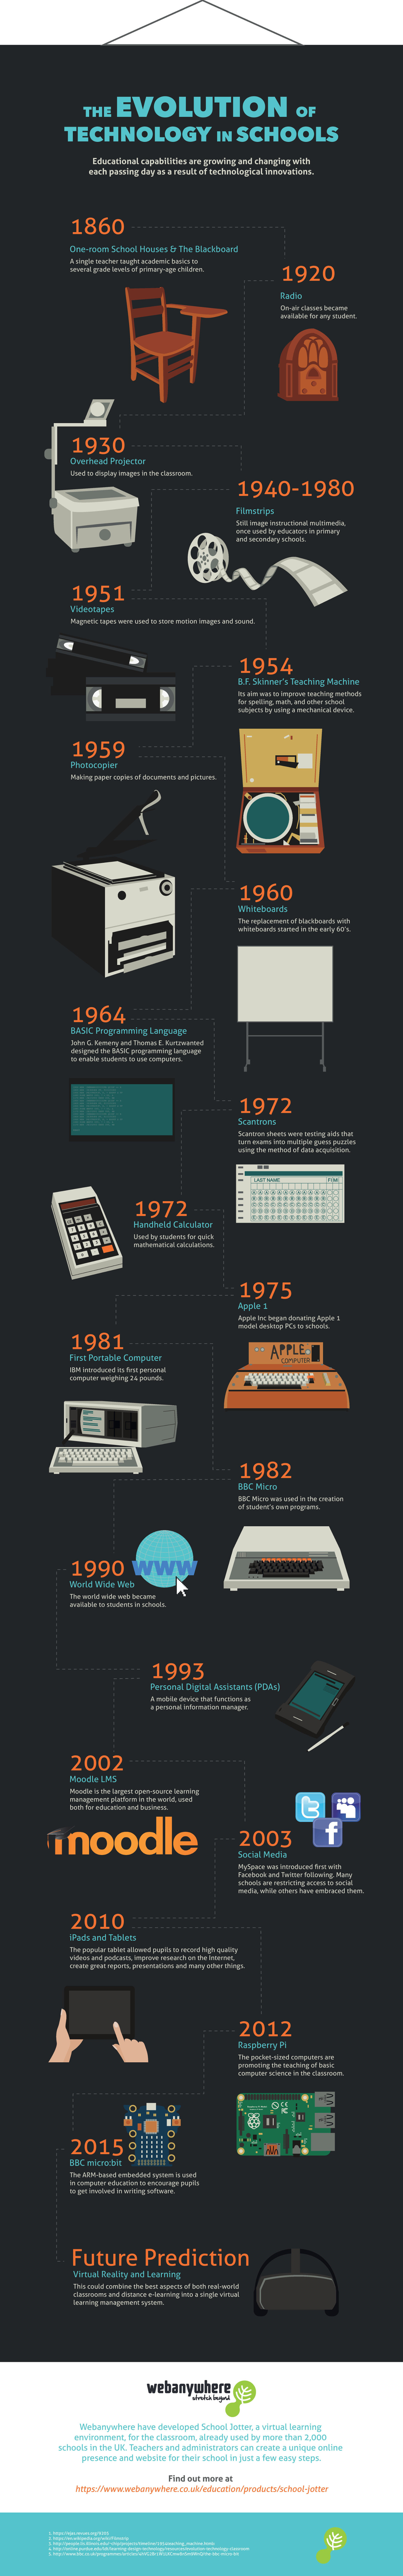 Evolution of Technology Infographic (resized)